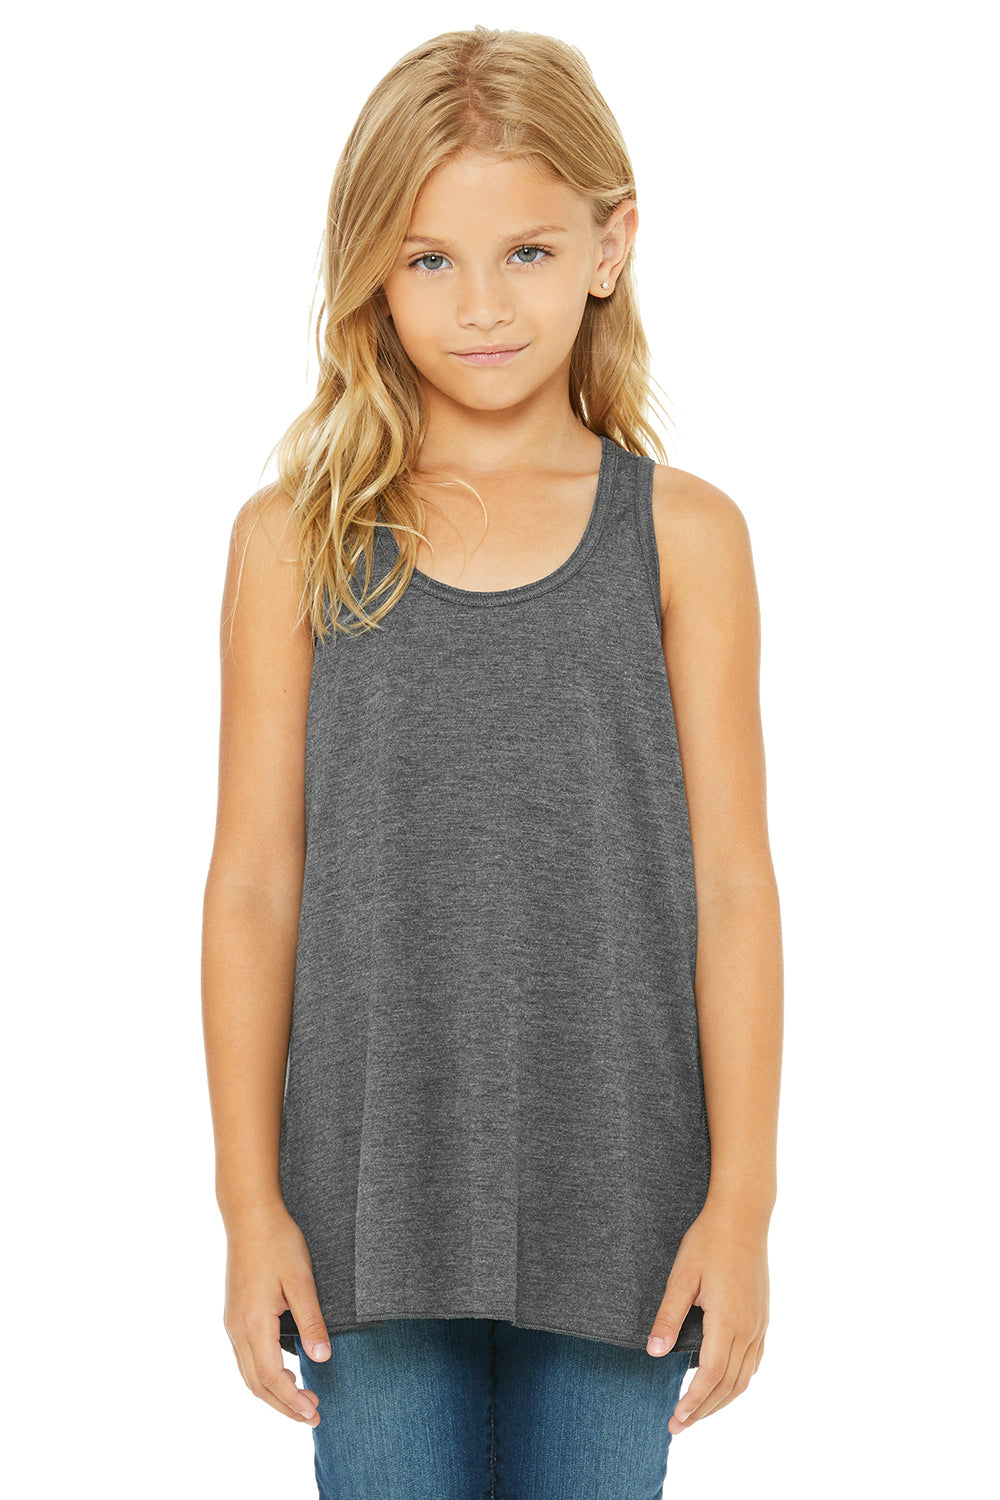 Bella + Canvas B8800Y Youth Flowy Tank Top Heather Dark Grey Front